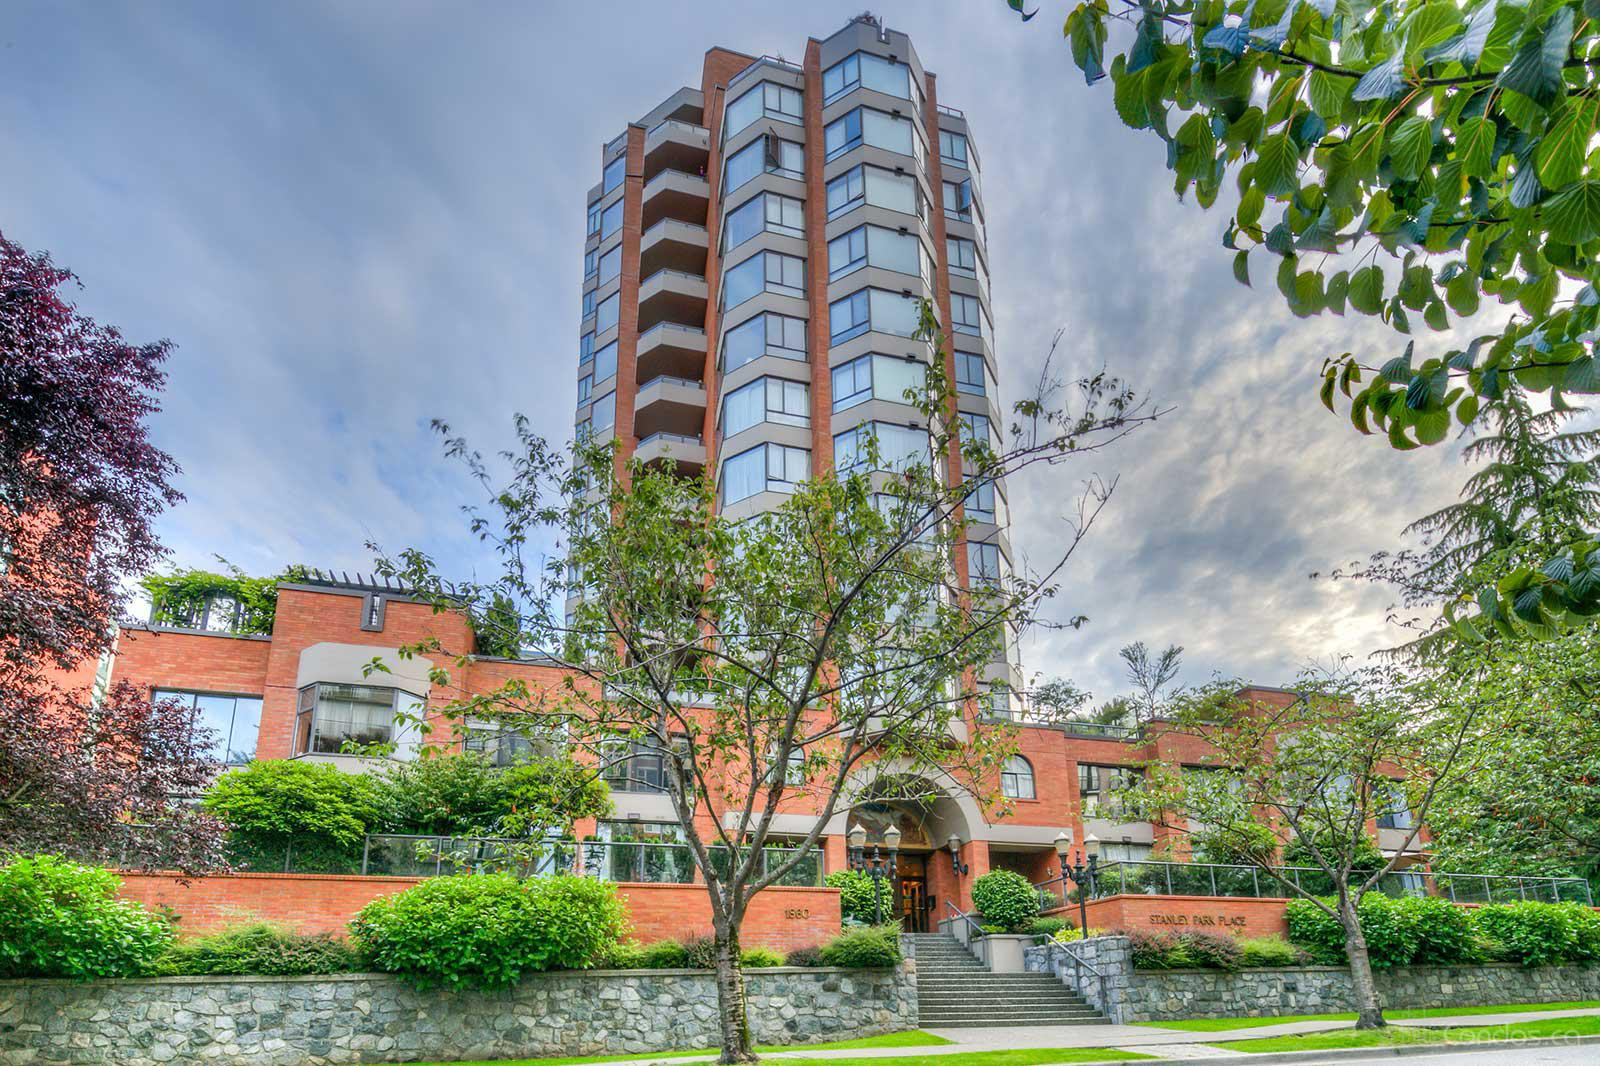 Stanley Park Place at 1860 Robson St, Vancouver 1